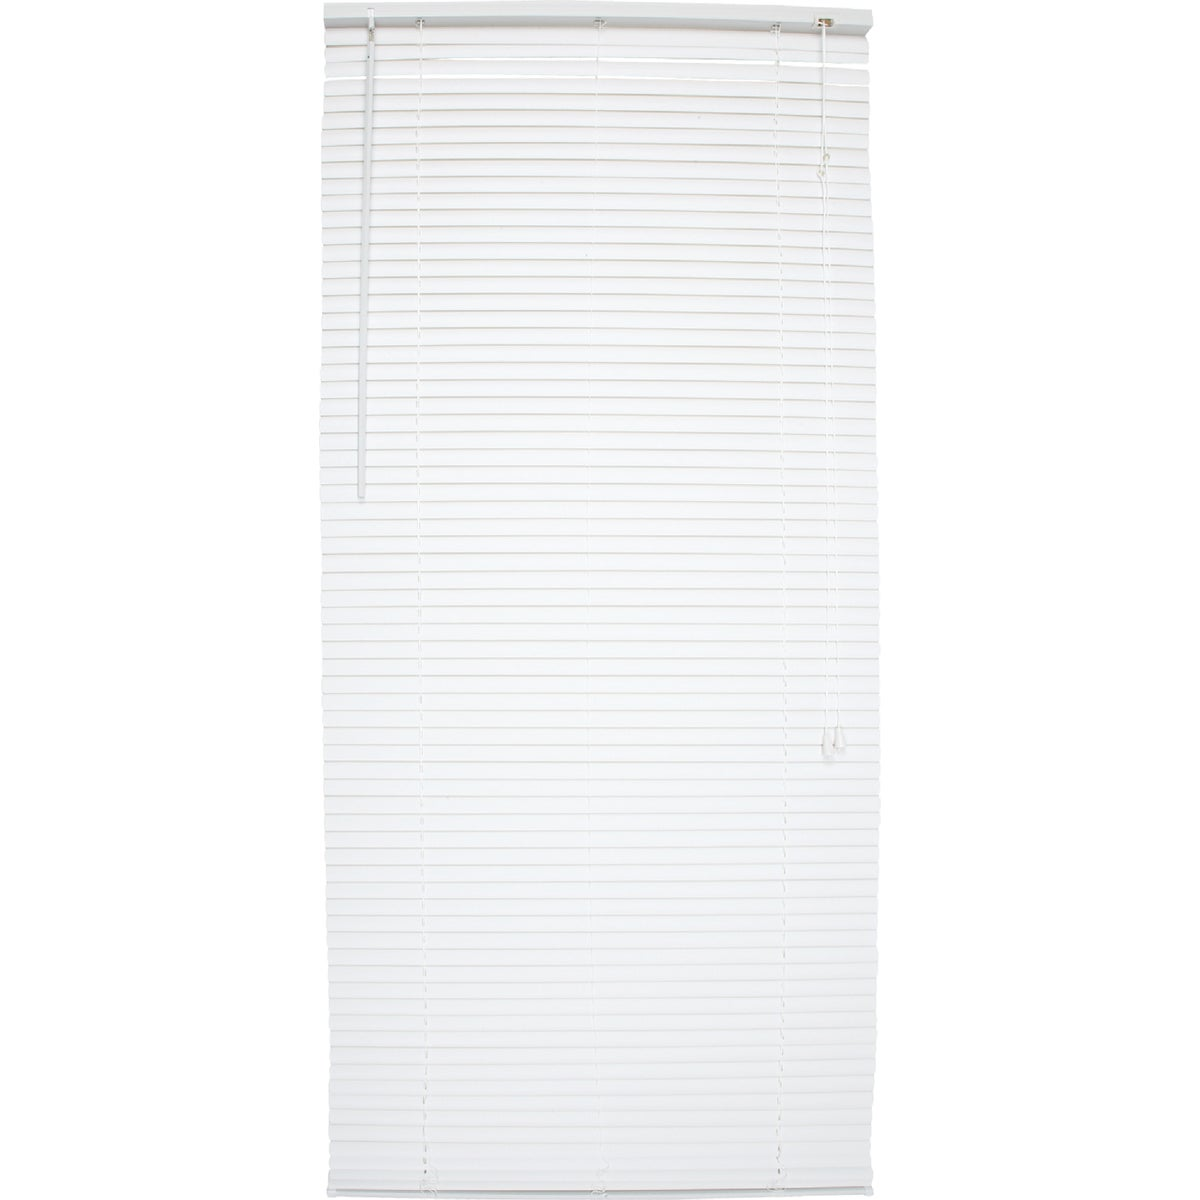 18X64 WHITE MINI BLIND - 614734 by Lotus Wind Incom